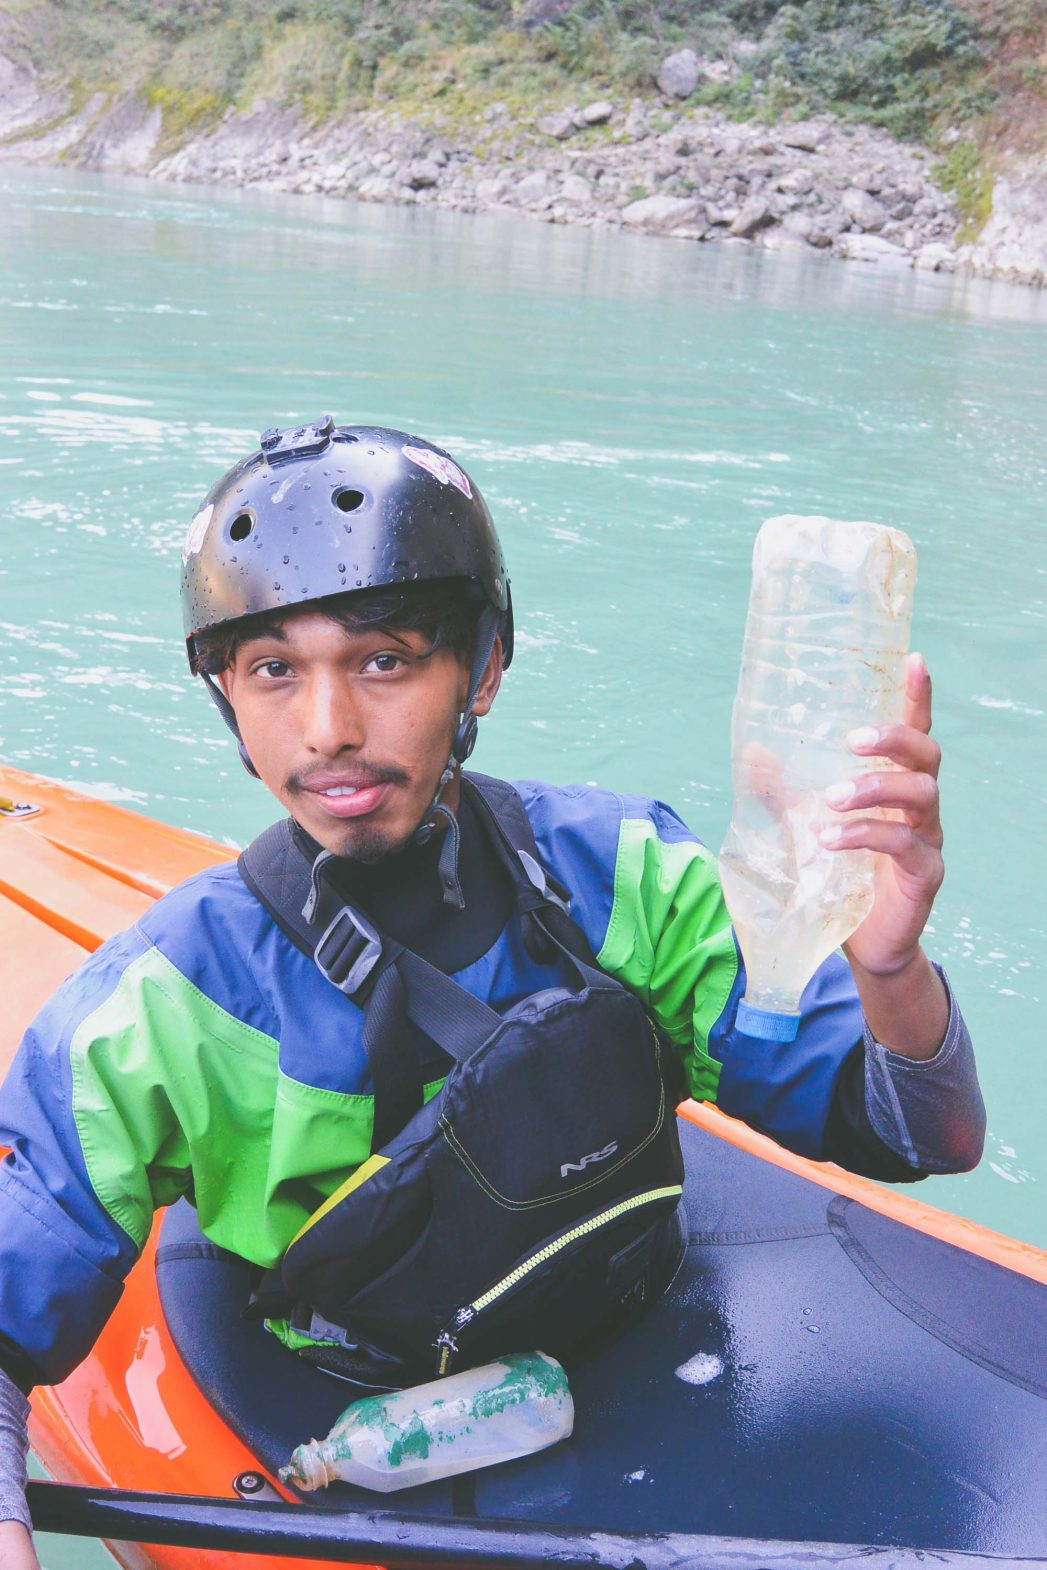 A kayaking guide removes a plastic bottle from the River Ganga in India.